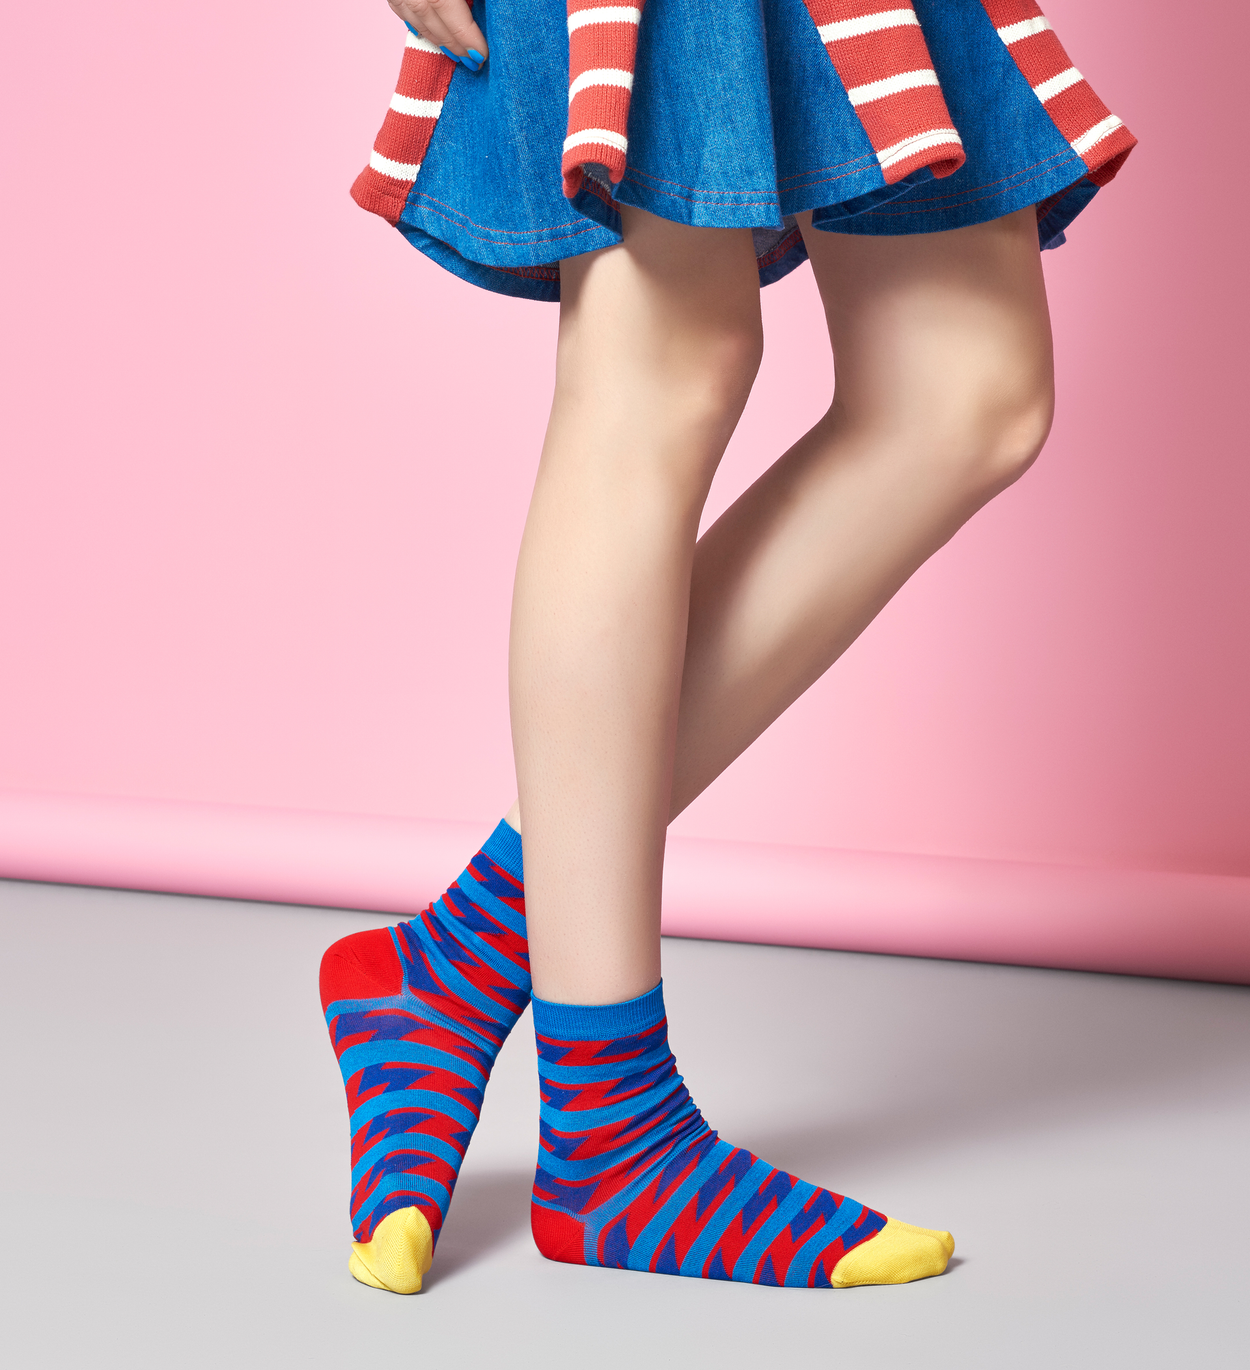 Women's Ankle Socks: Ray - Red & Blue   Hysteria